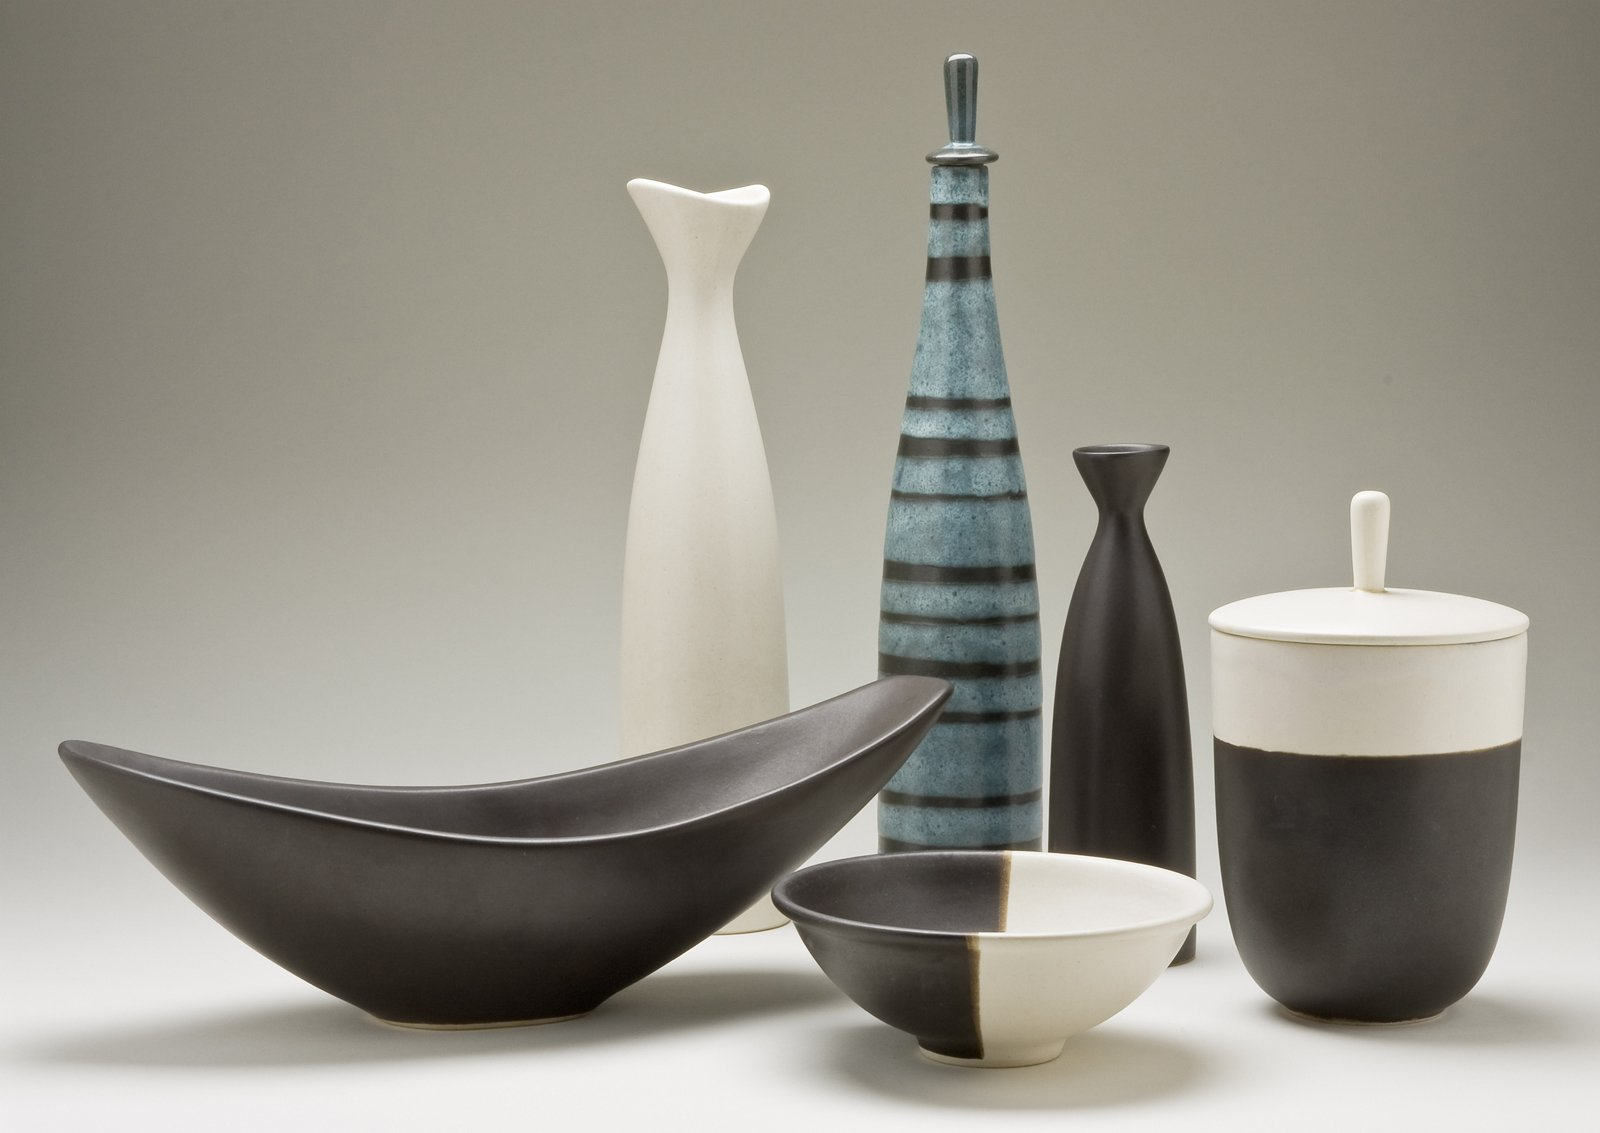 Selection of functional ceramic vessels, slip-cast earthenware, Jerome Ackerman, 1953-59.  A Marriage of Craft and Design by Miyoko Ohtake